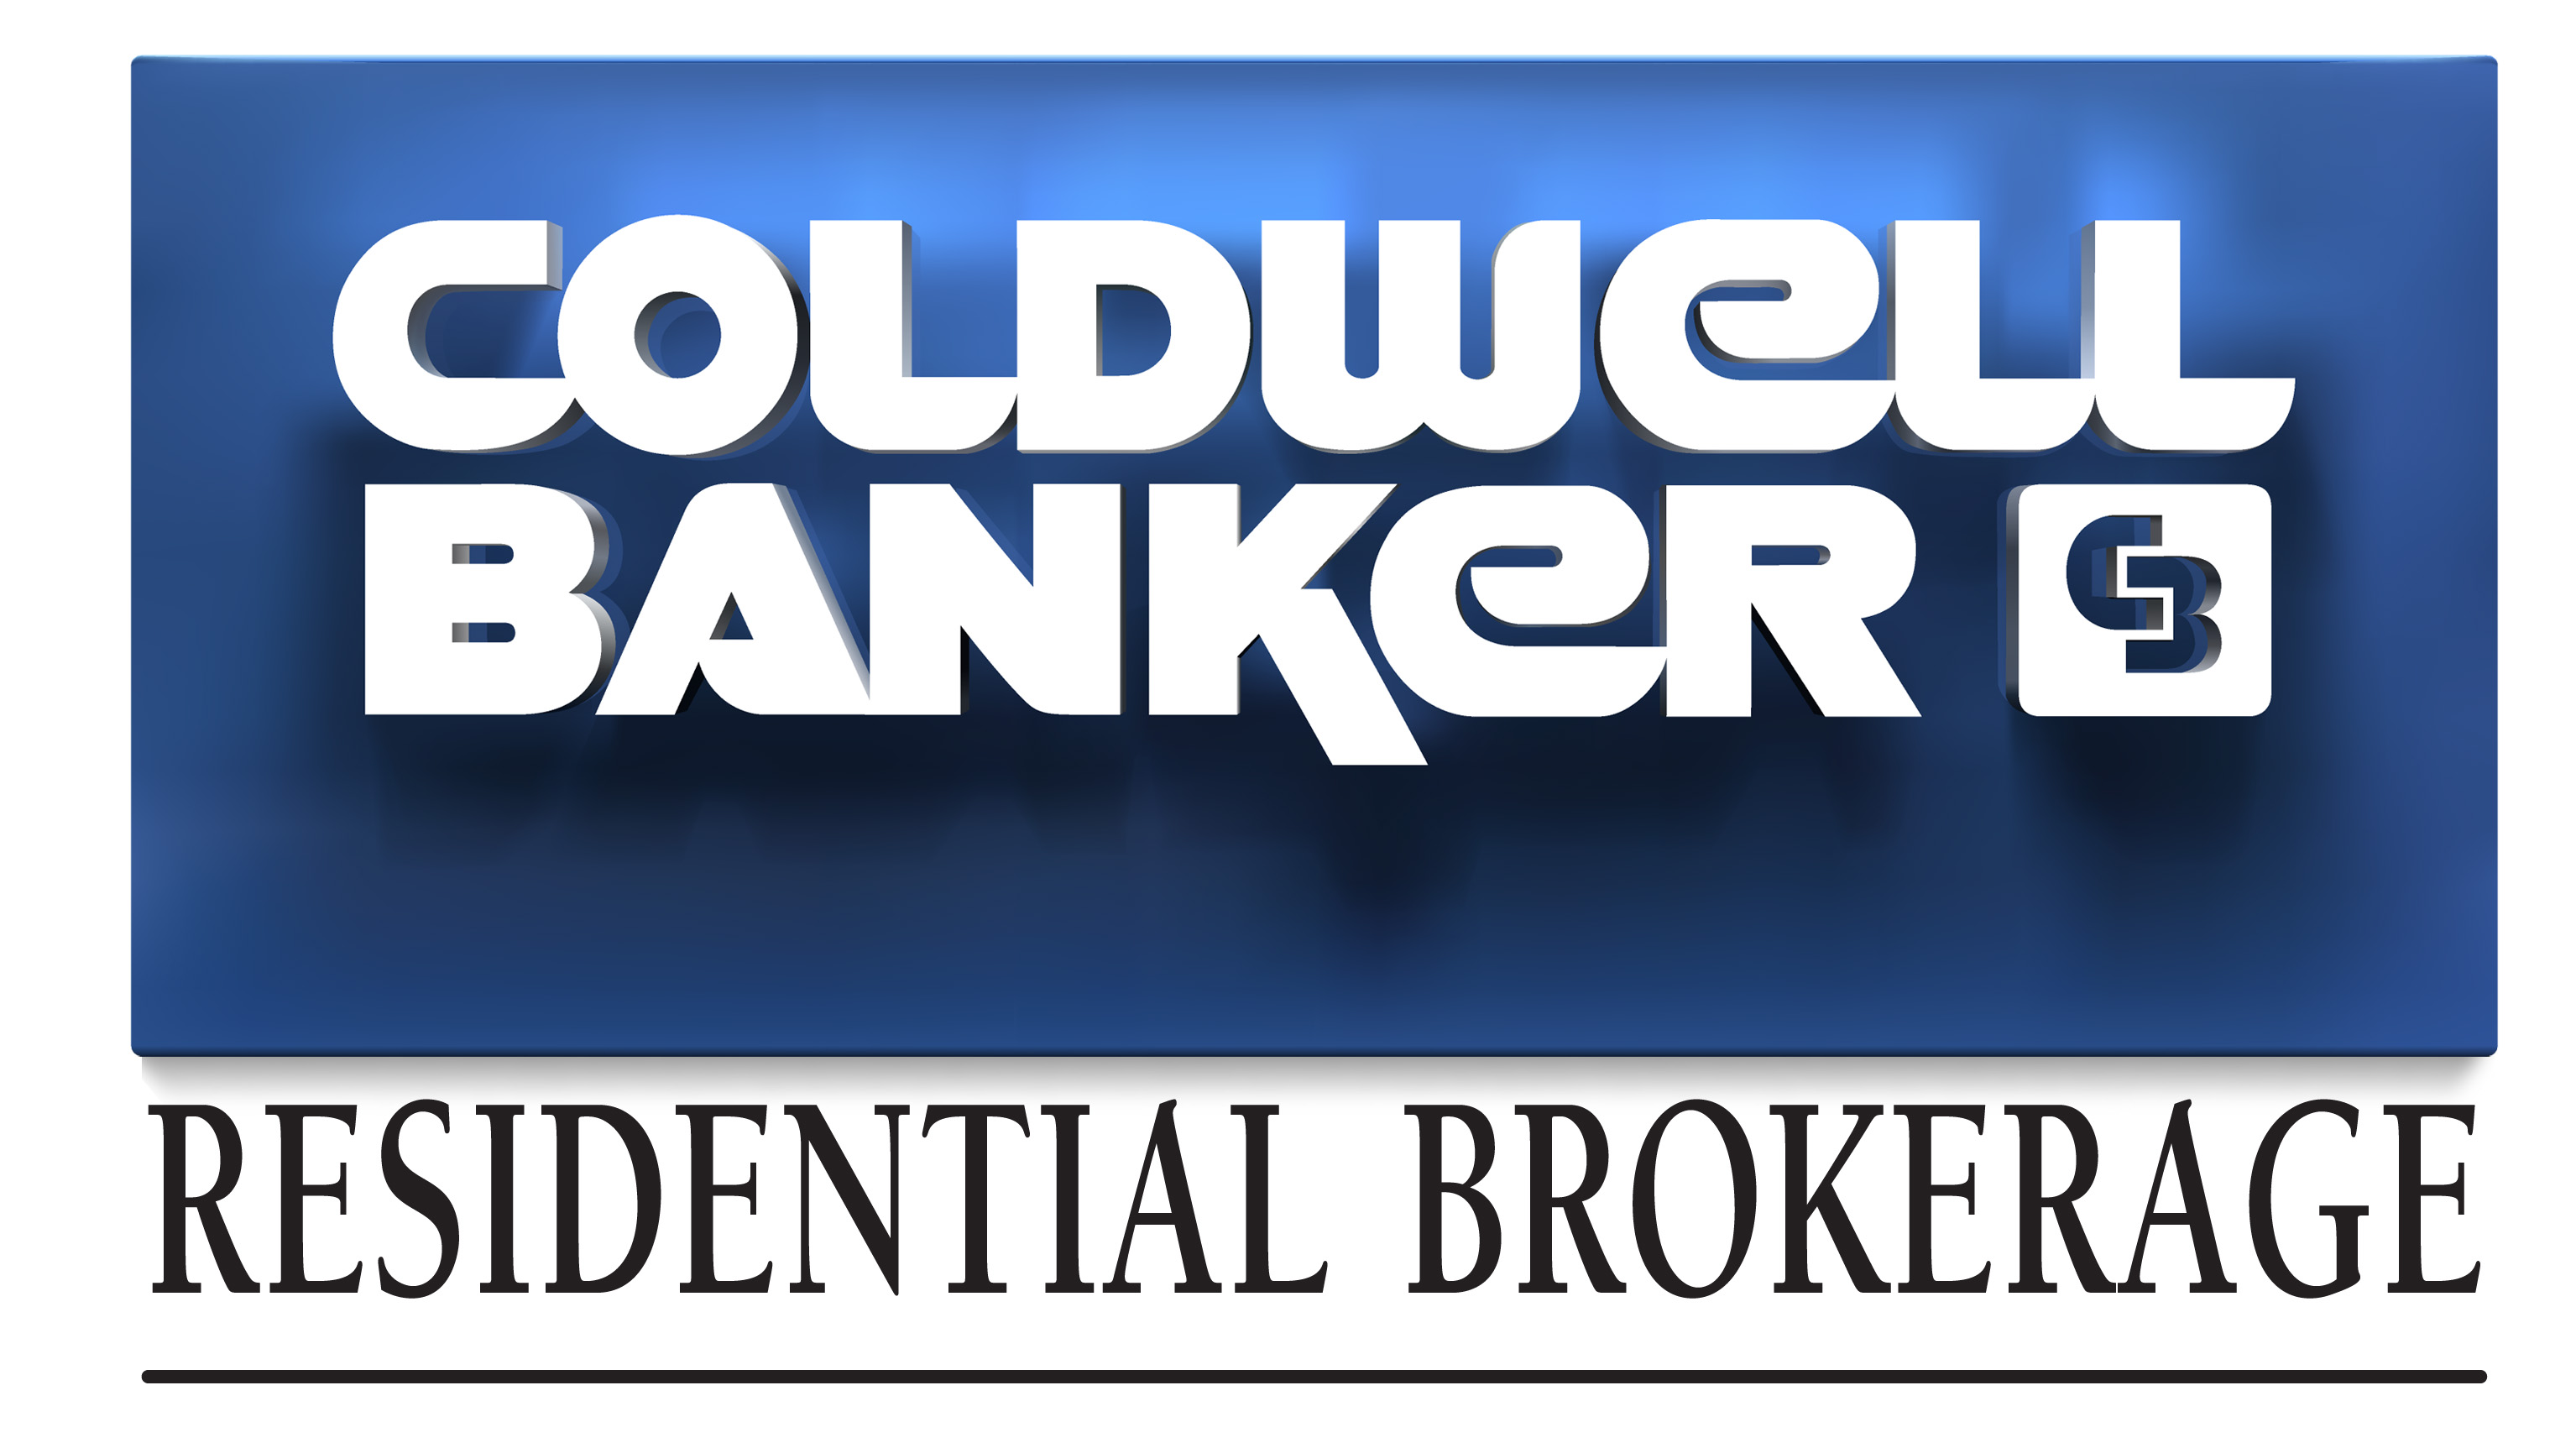 Coldwell Banker Residential Brokerage - Natick